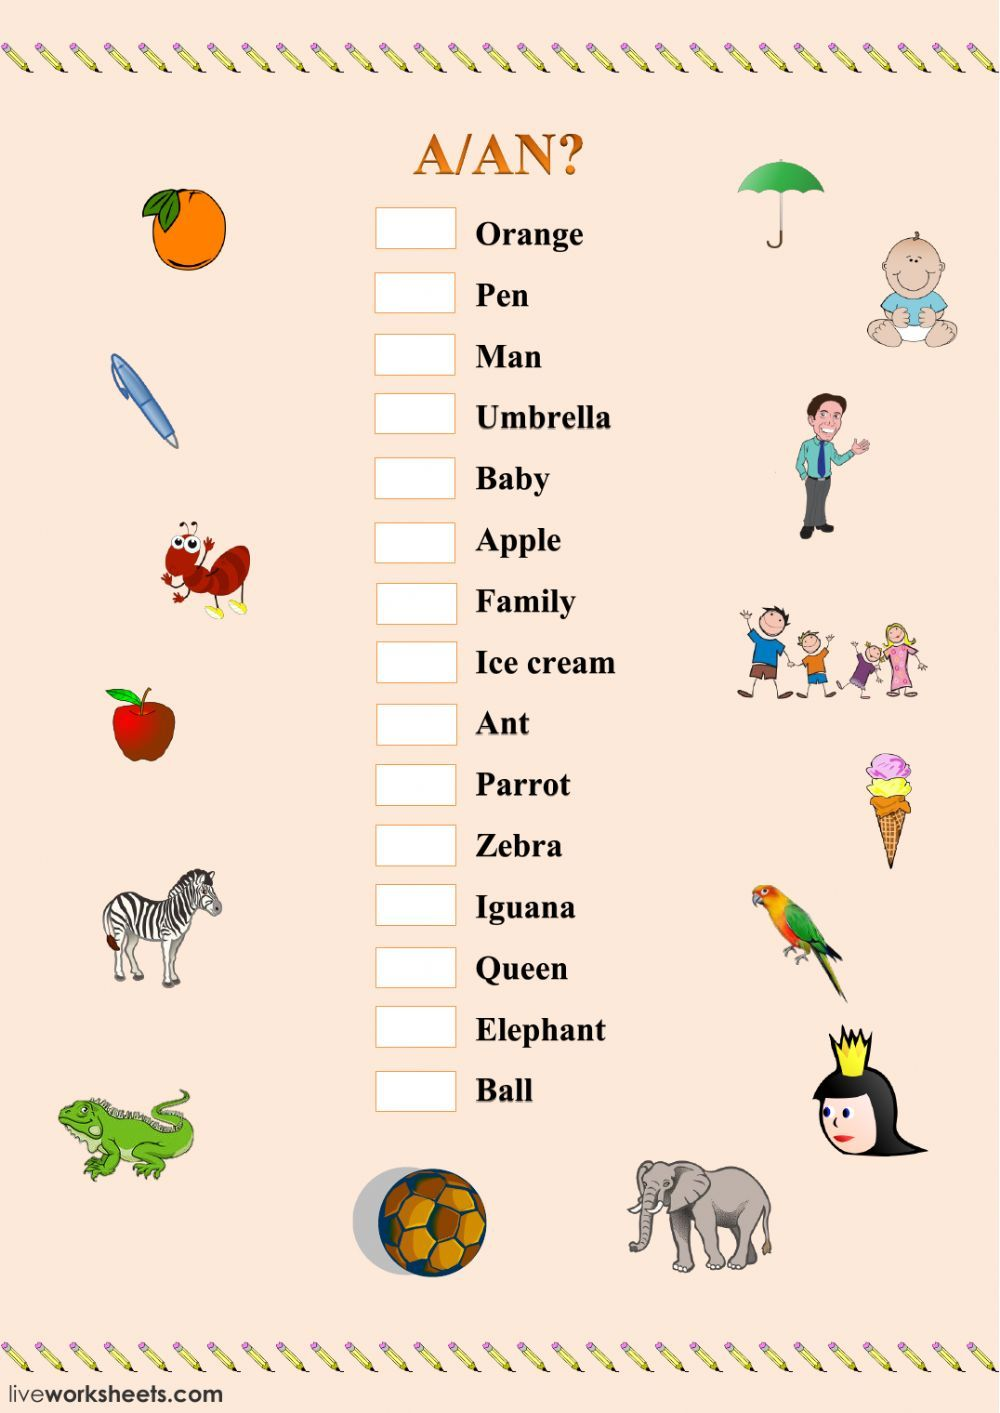 Indefinite Articles Interactive And Downloadable Worksheet You Can Do The Exercises O Learning English For Kids English For Beginners English Lessons For Kids [ 1413 x 1000 Pixel ]